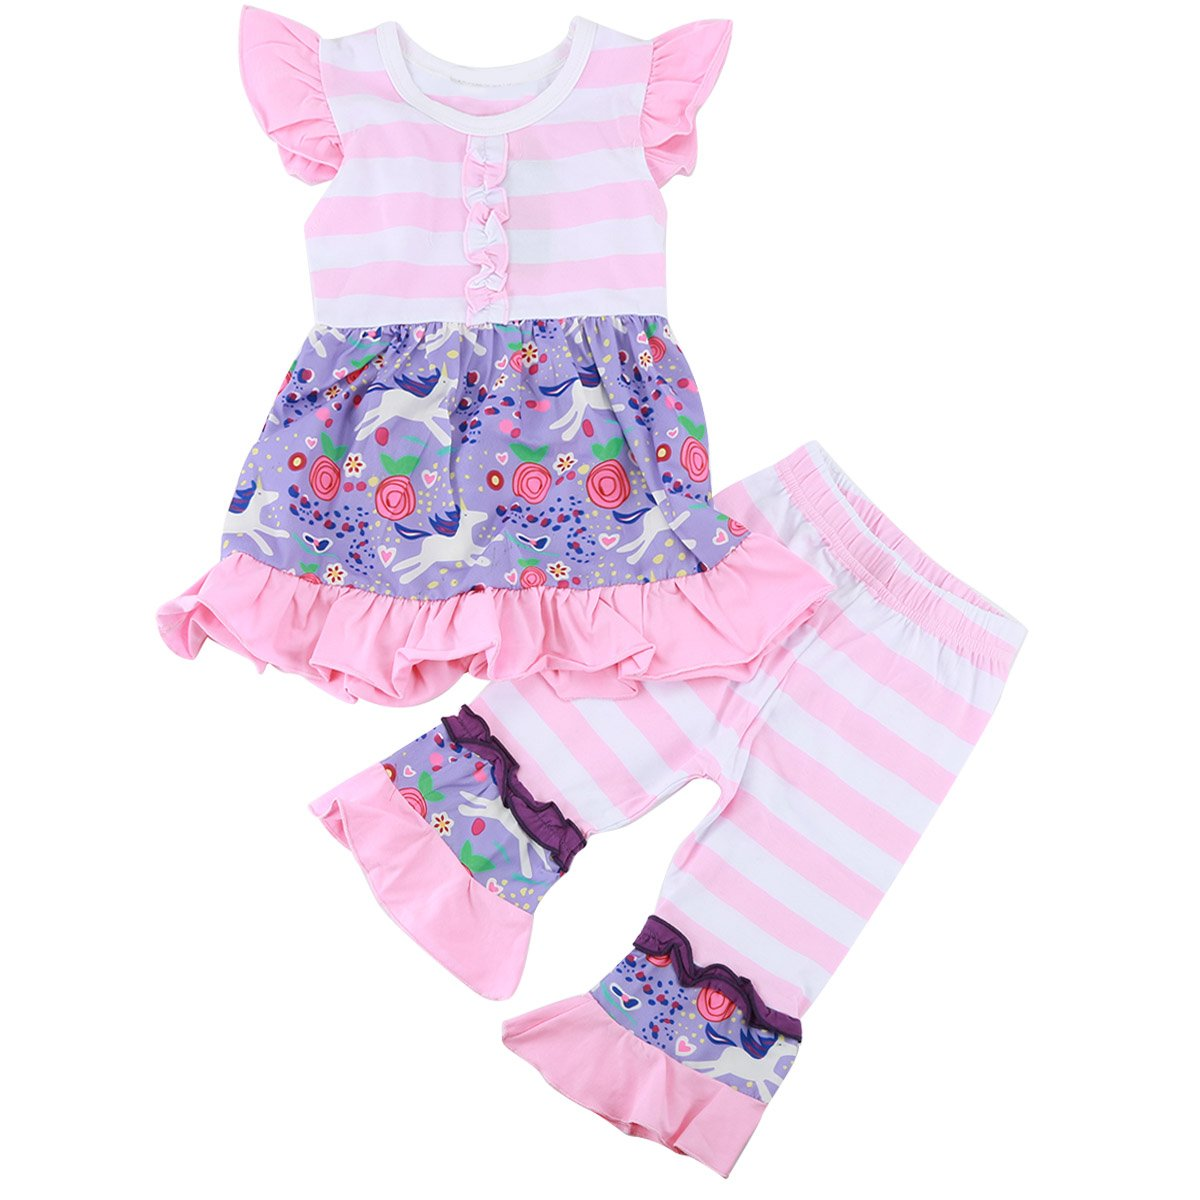 2Pcs Toddler Girls Sleeveless Pony Print Tops + Cropped Pants Ruffle Outfits Set (4T) by Ant-Kinds (Image #1)